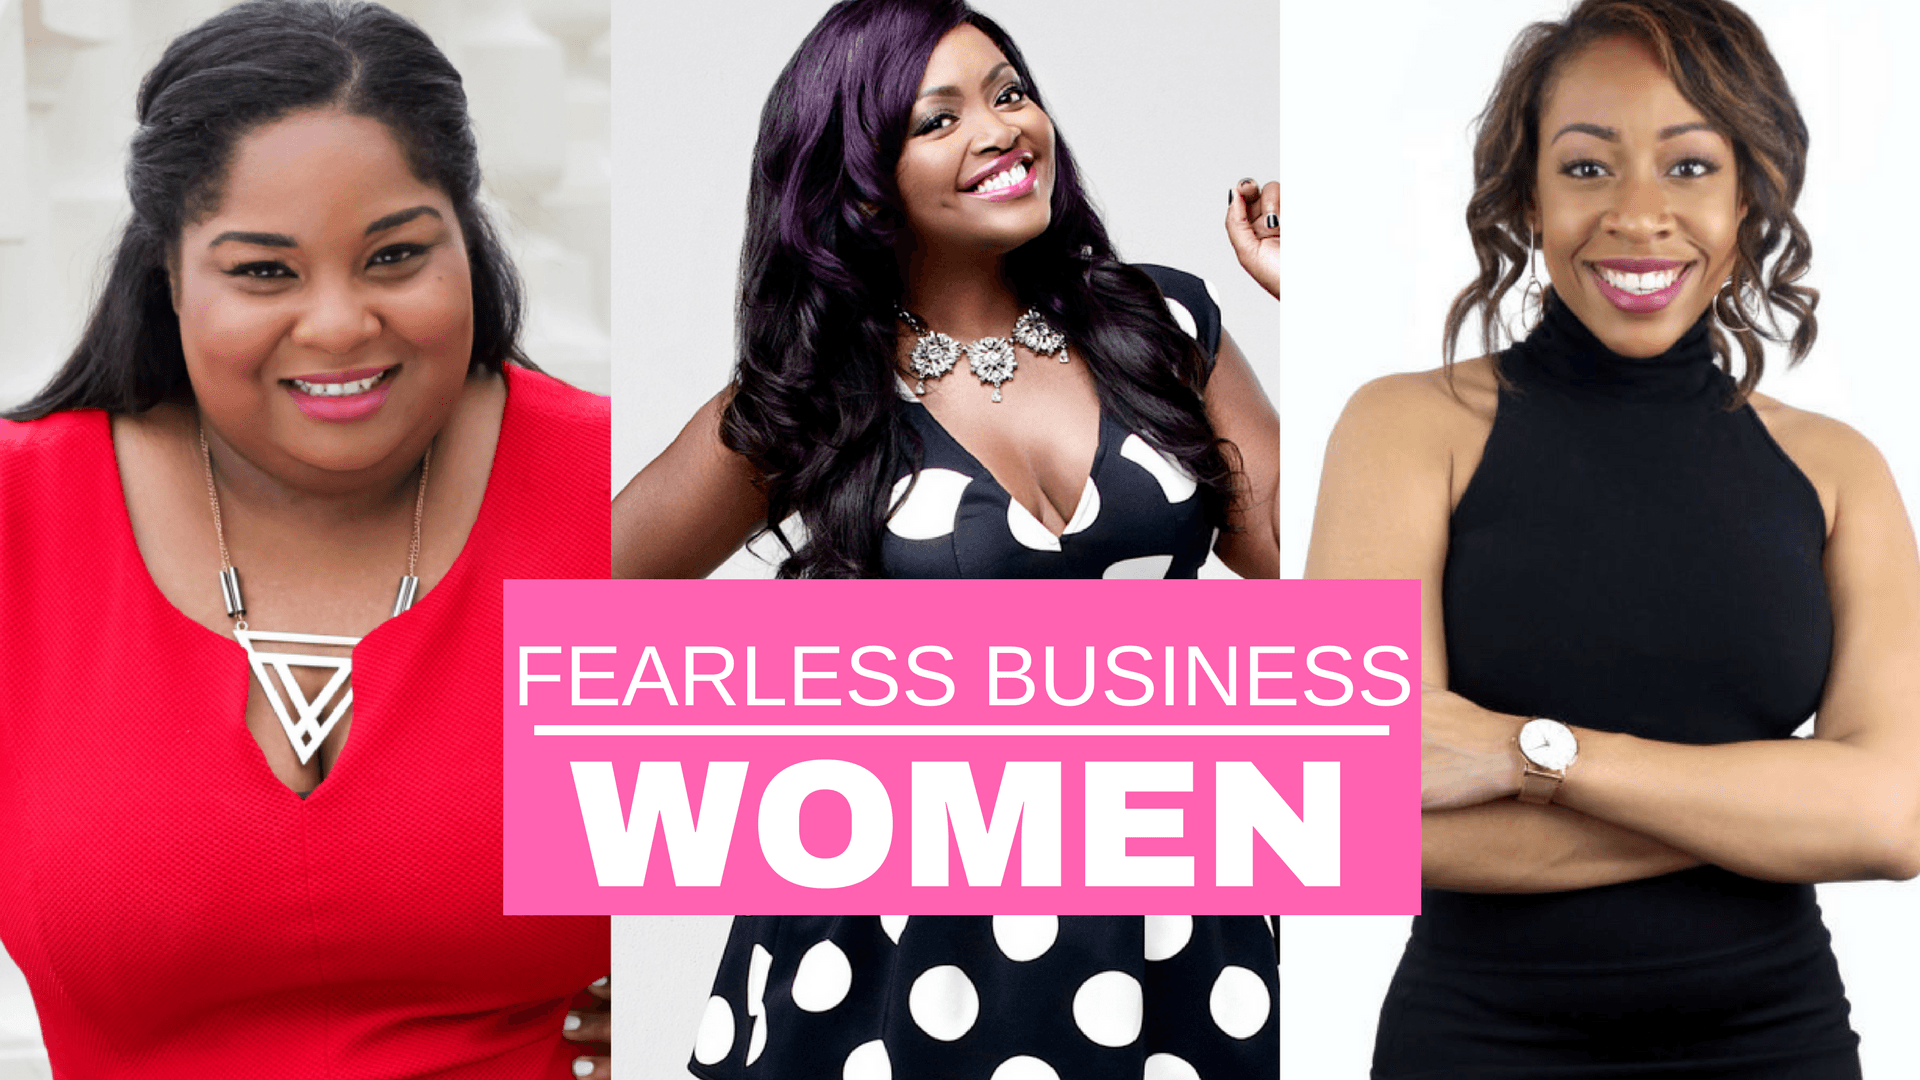 MORE FAVORITE FEARLESS BUSINESS WOMEN